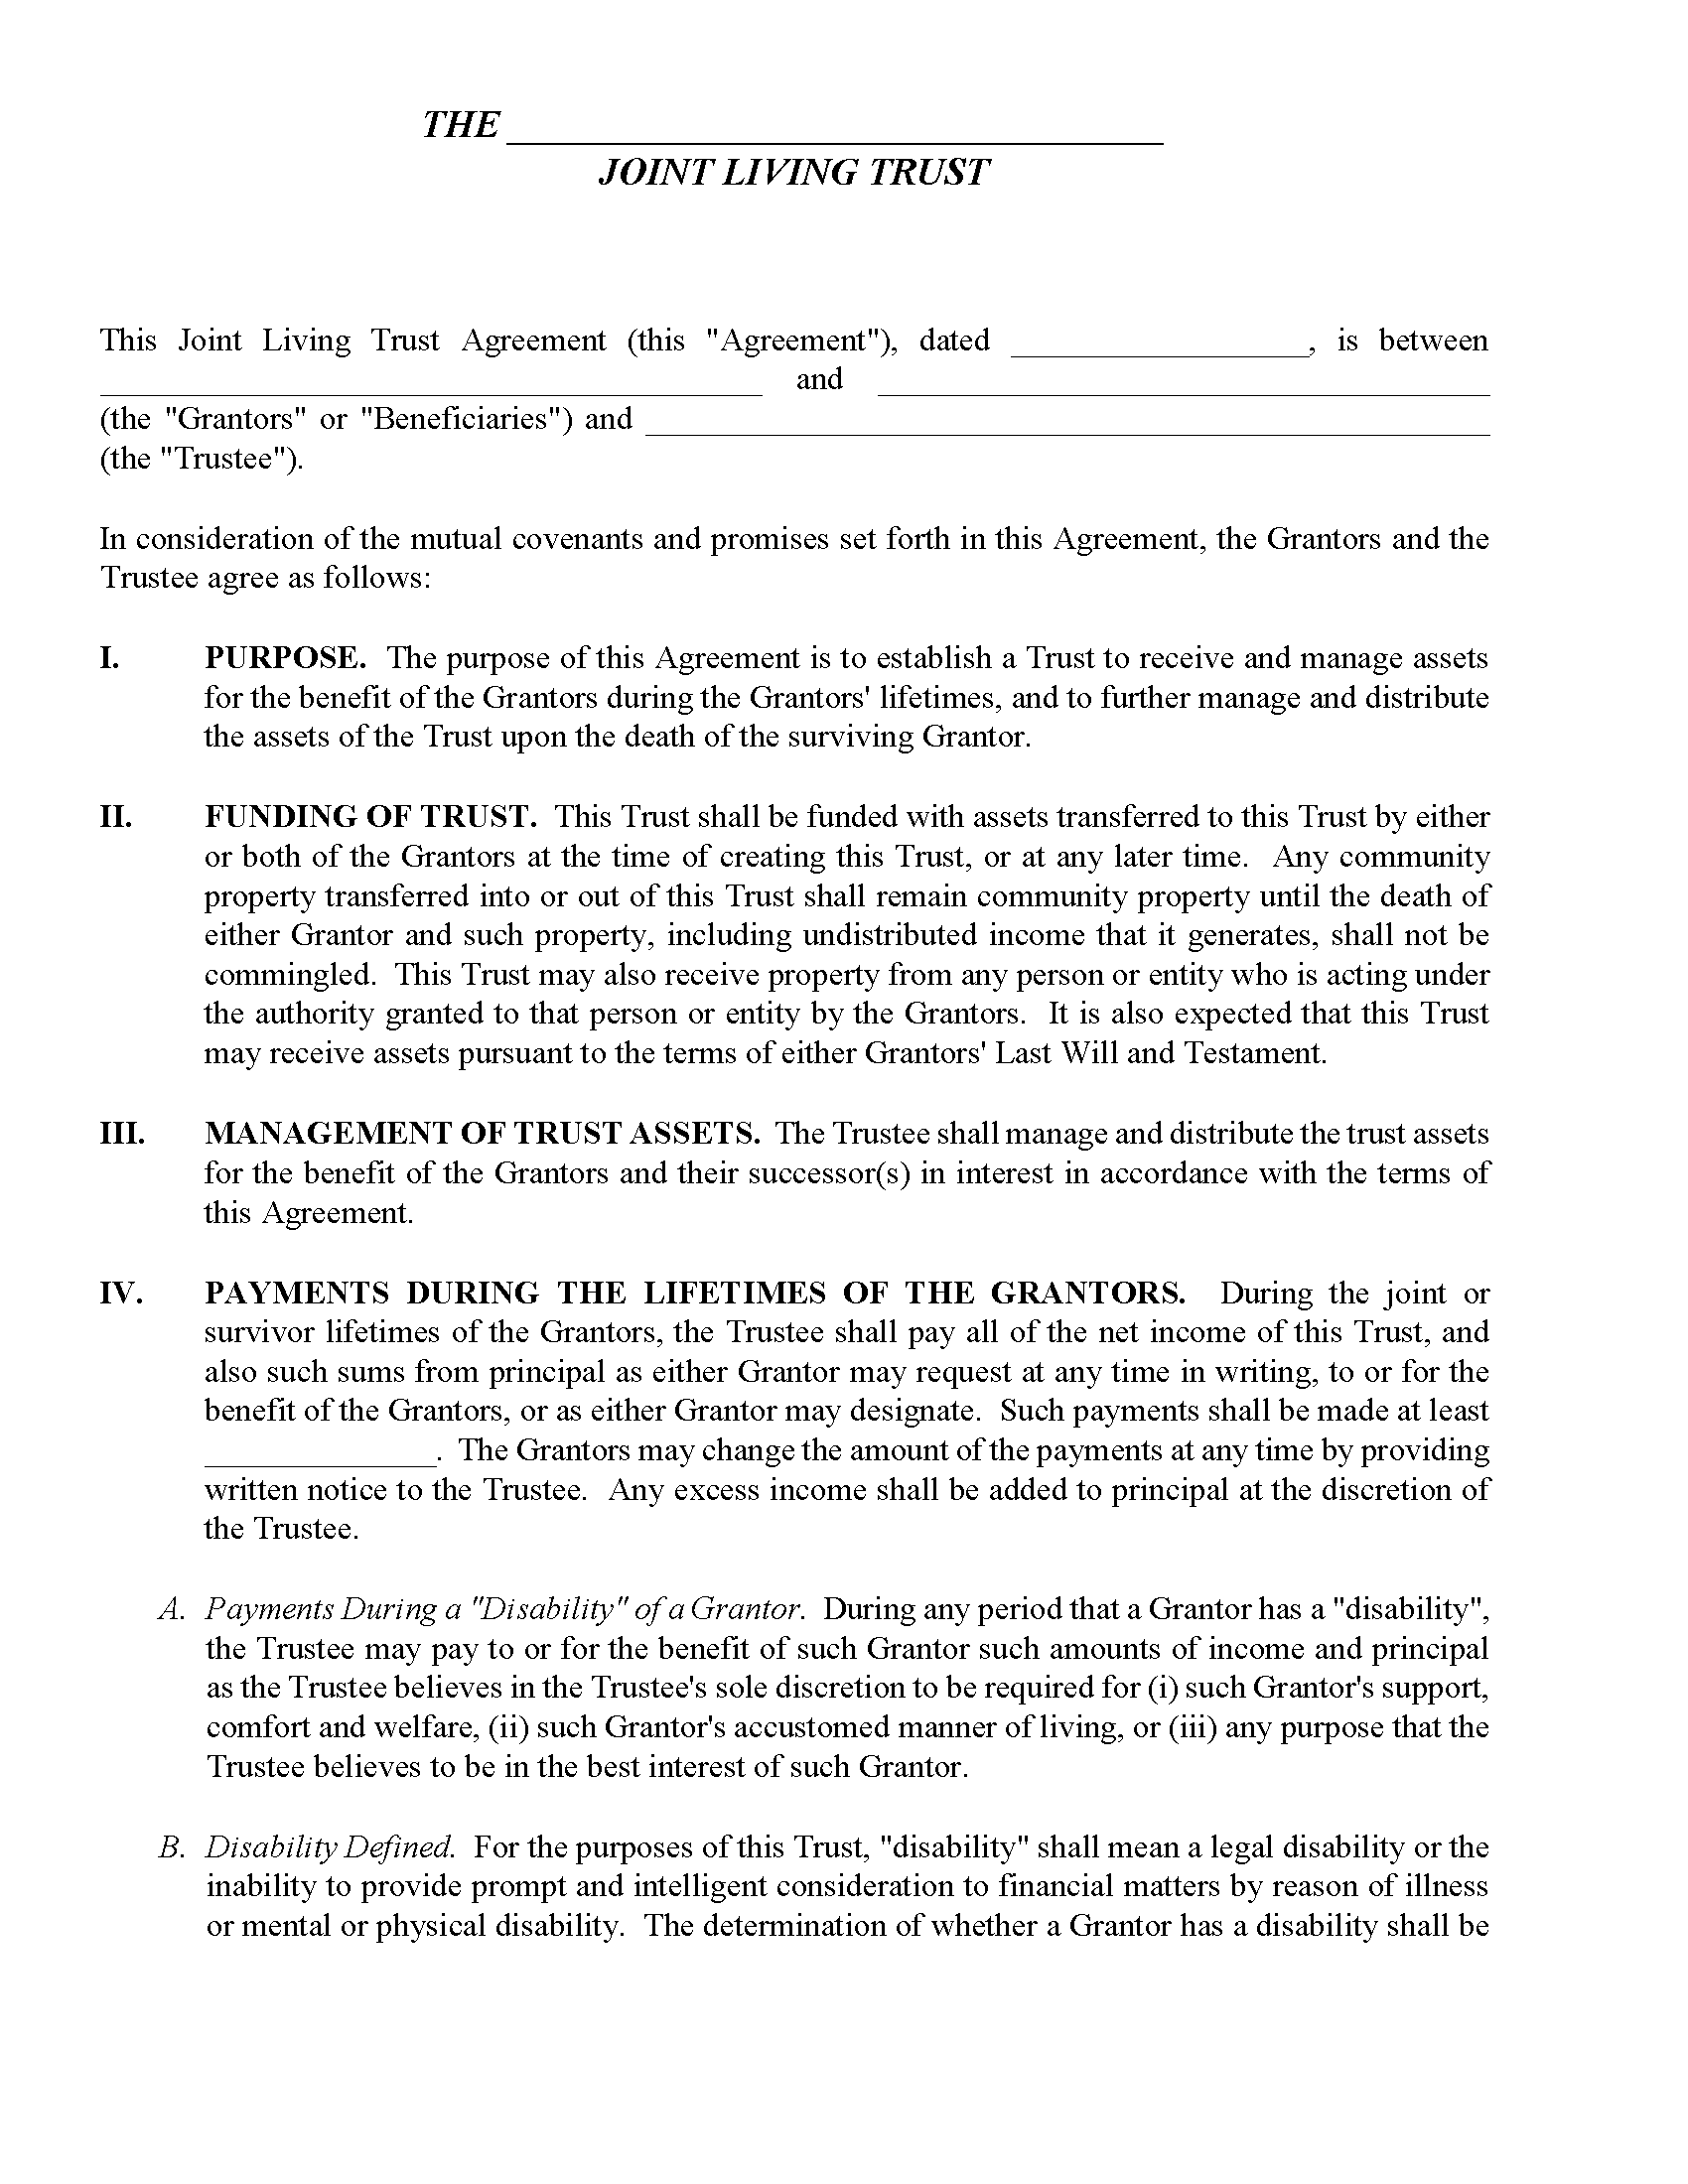 Hawaii Joint Living Trust Form